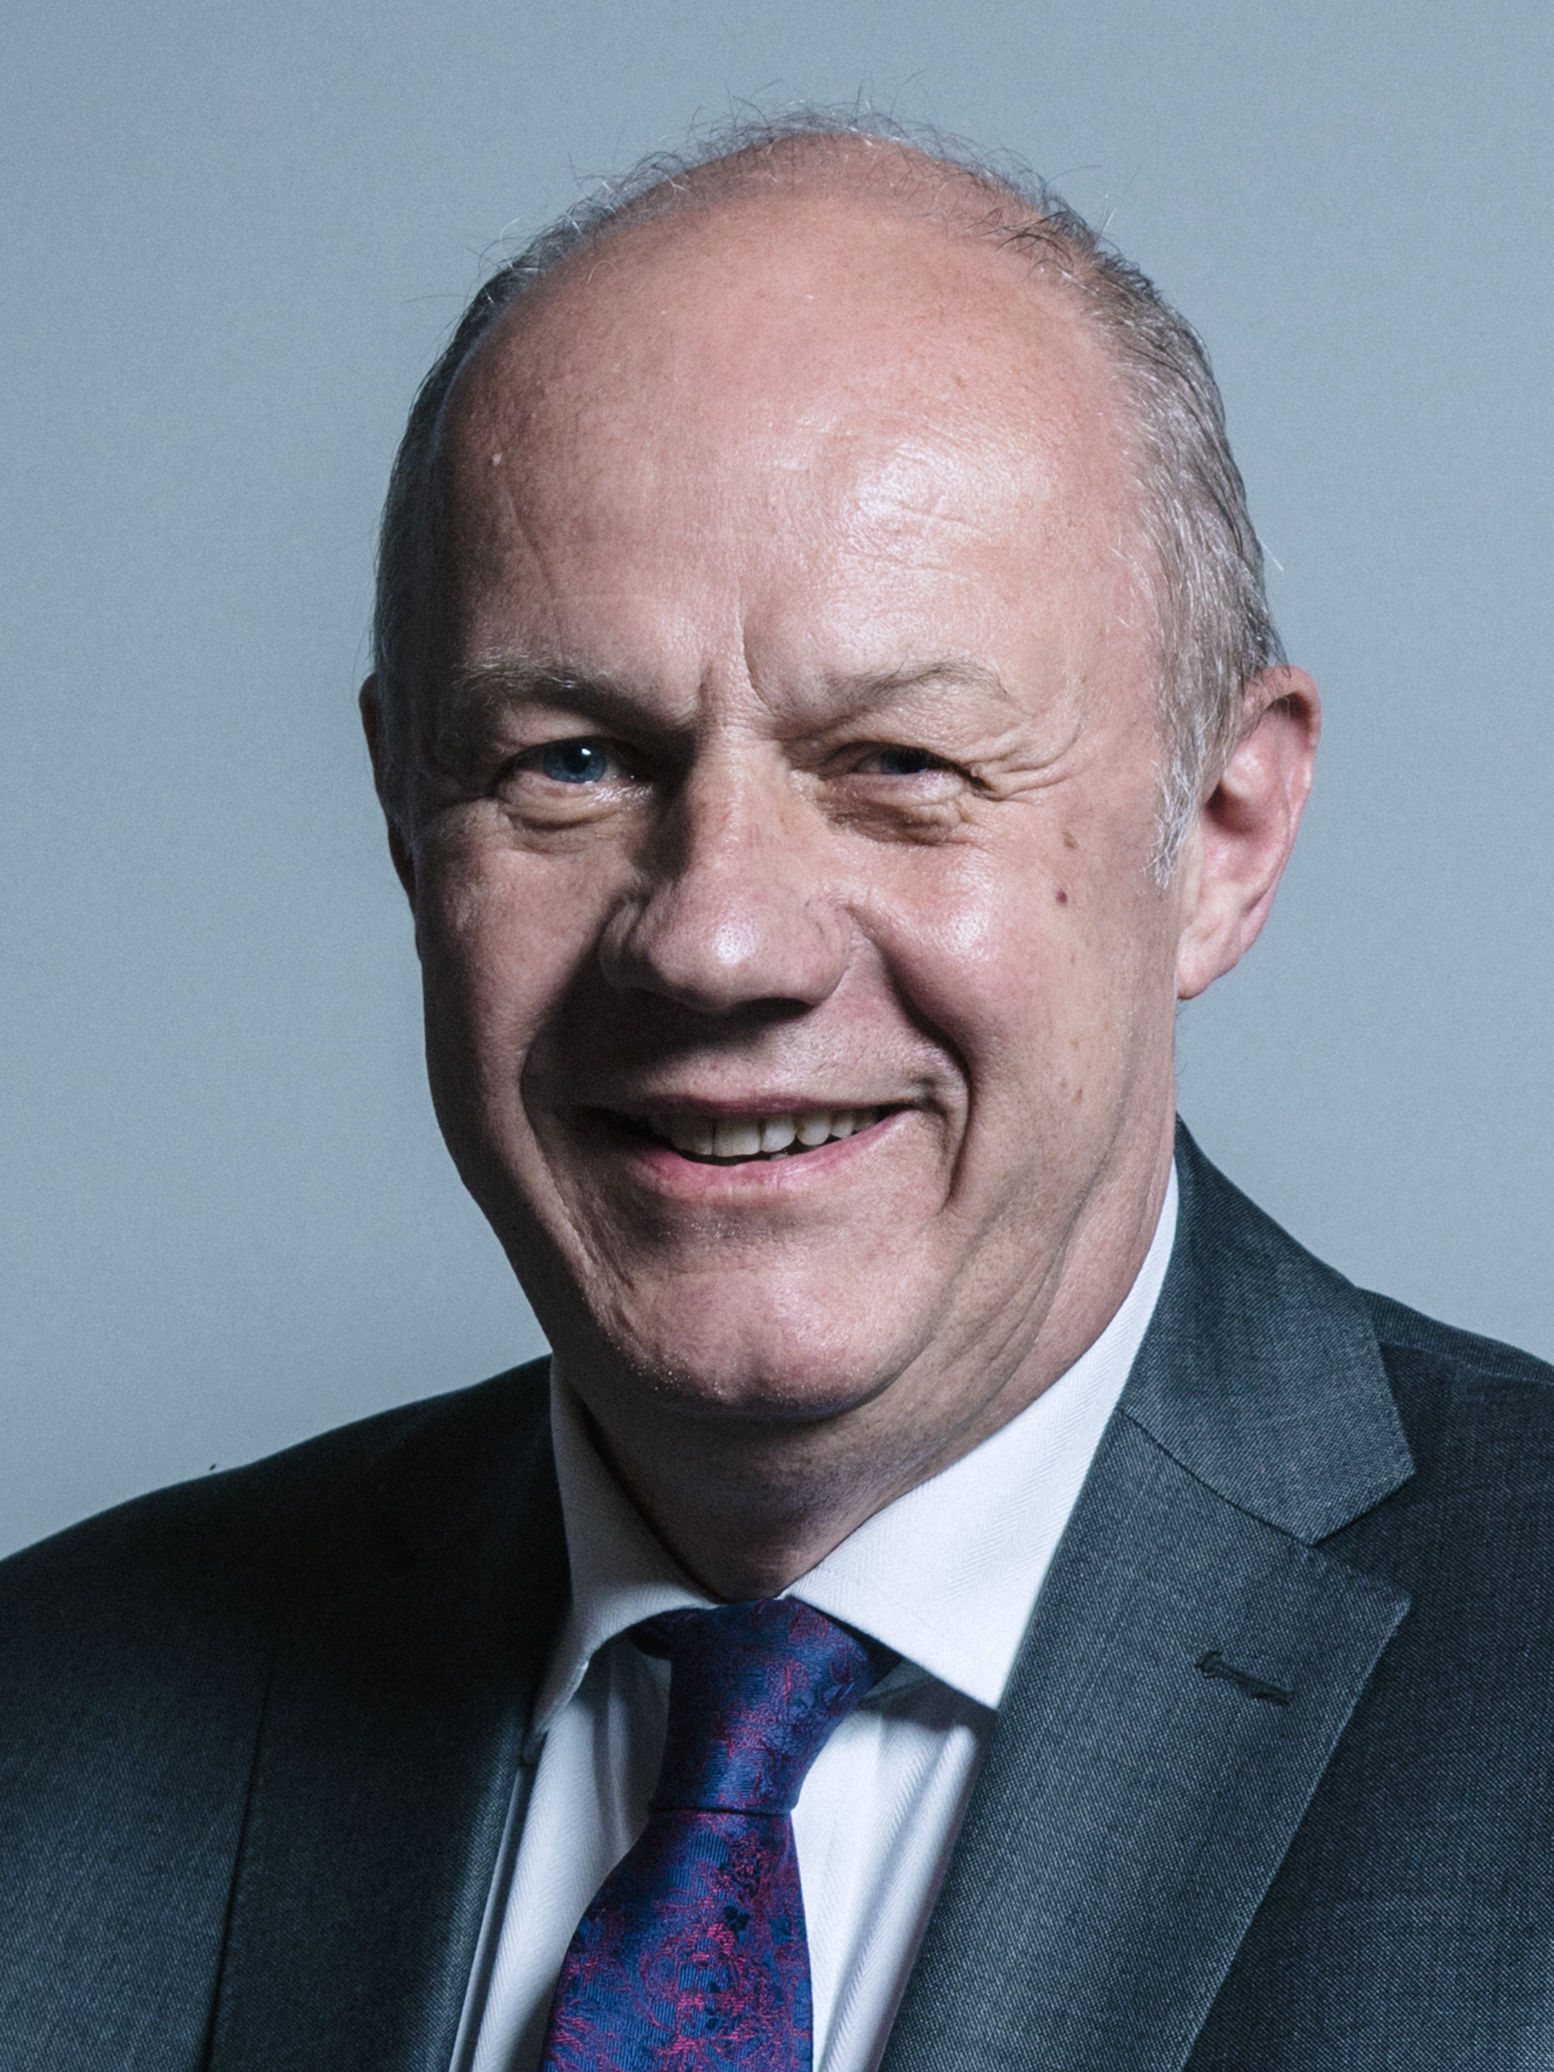 Official_portrait_of_Damian_Green_crop_2.jpg?profile=RESIZE_710x